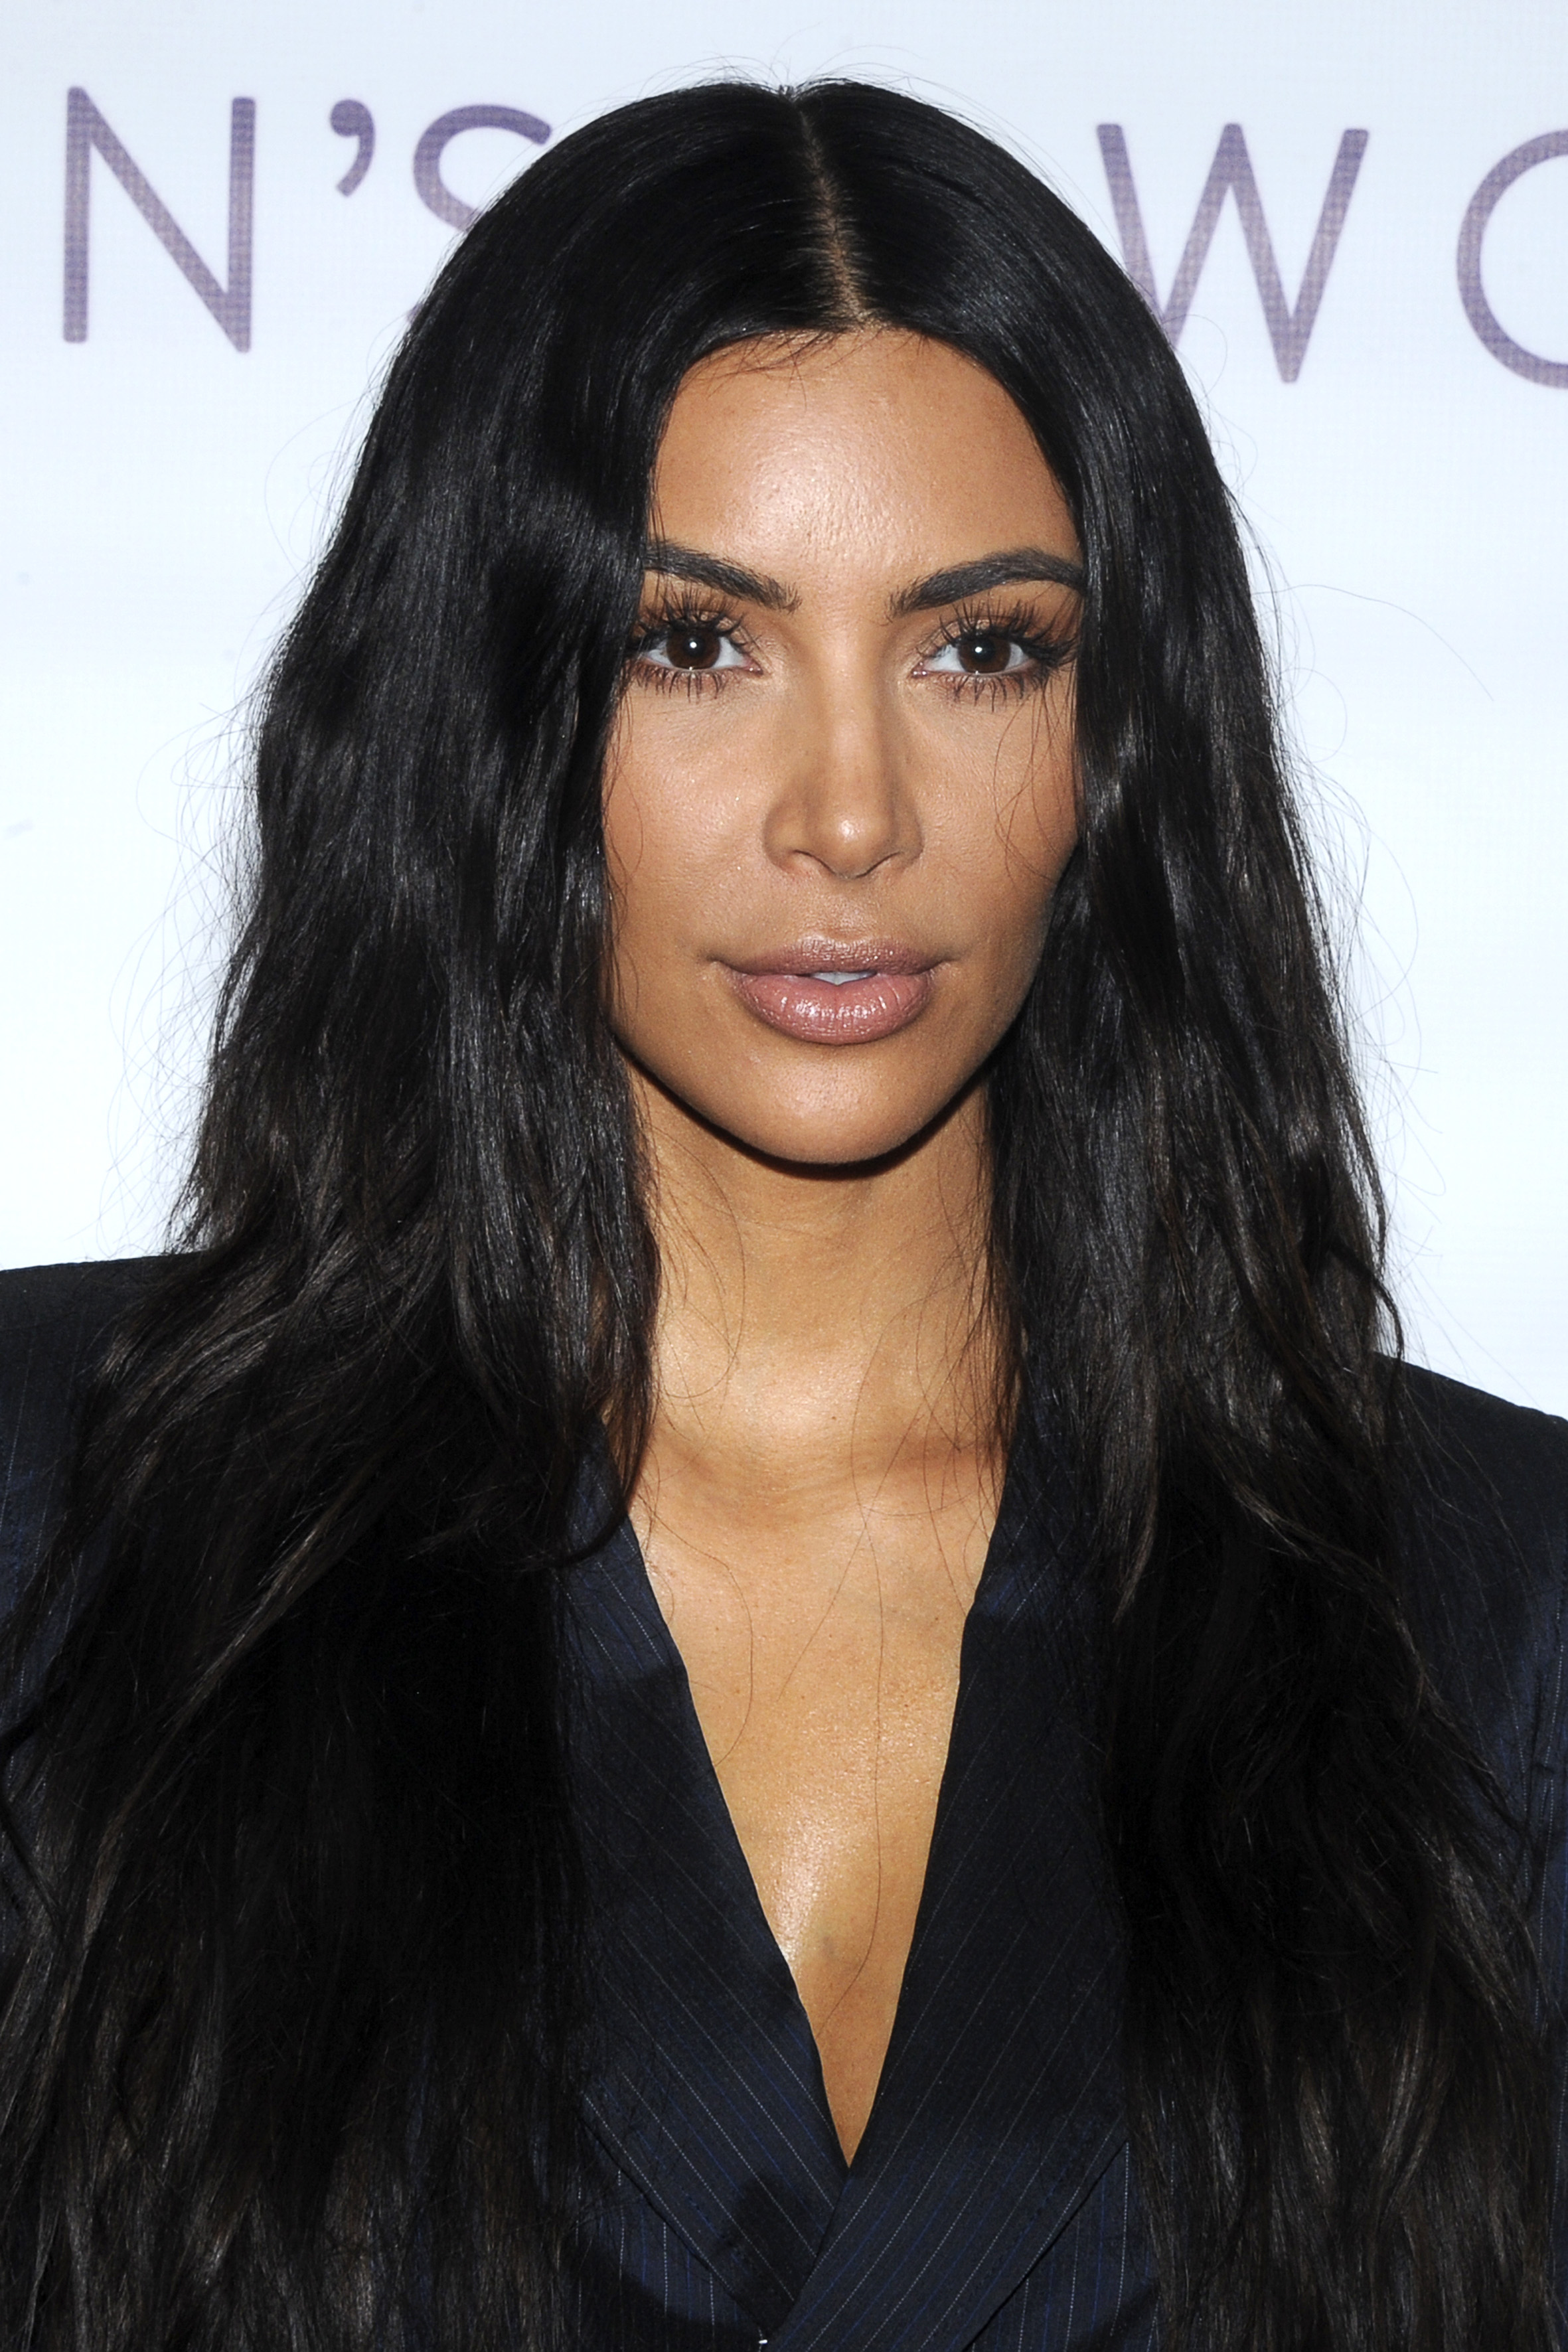 Kim Kardashian attends the 2017 Forbes Women's Summit at Spring Studios                                    Featuring: Kim Kardashian, Kim Kardashian West                  Where: New York, New York, United States                  When: 13 Jun 2017                  Credit: Dennis Van Tine/Future Image/WENN.com